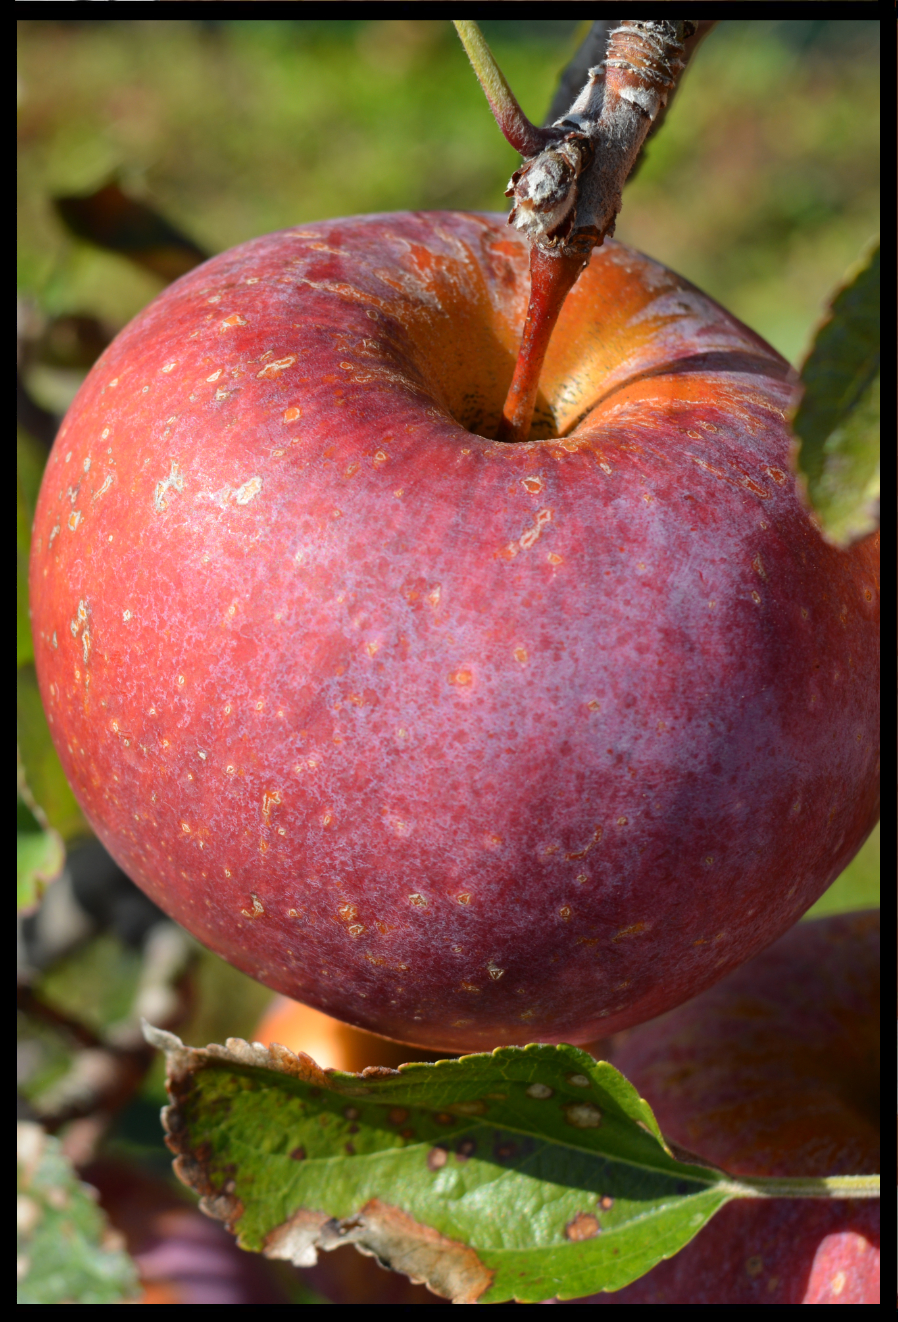 red apple with darker red stripes and yellow spots and a white haze over the skin